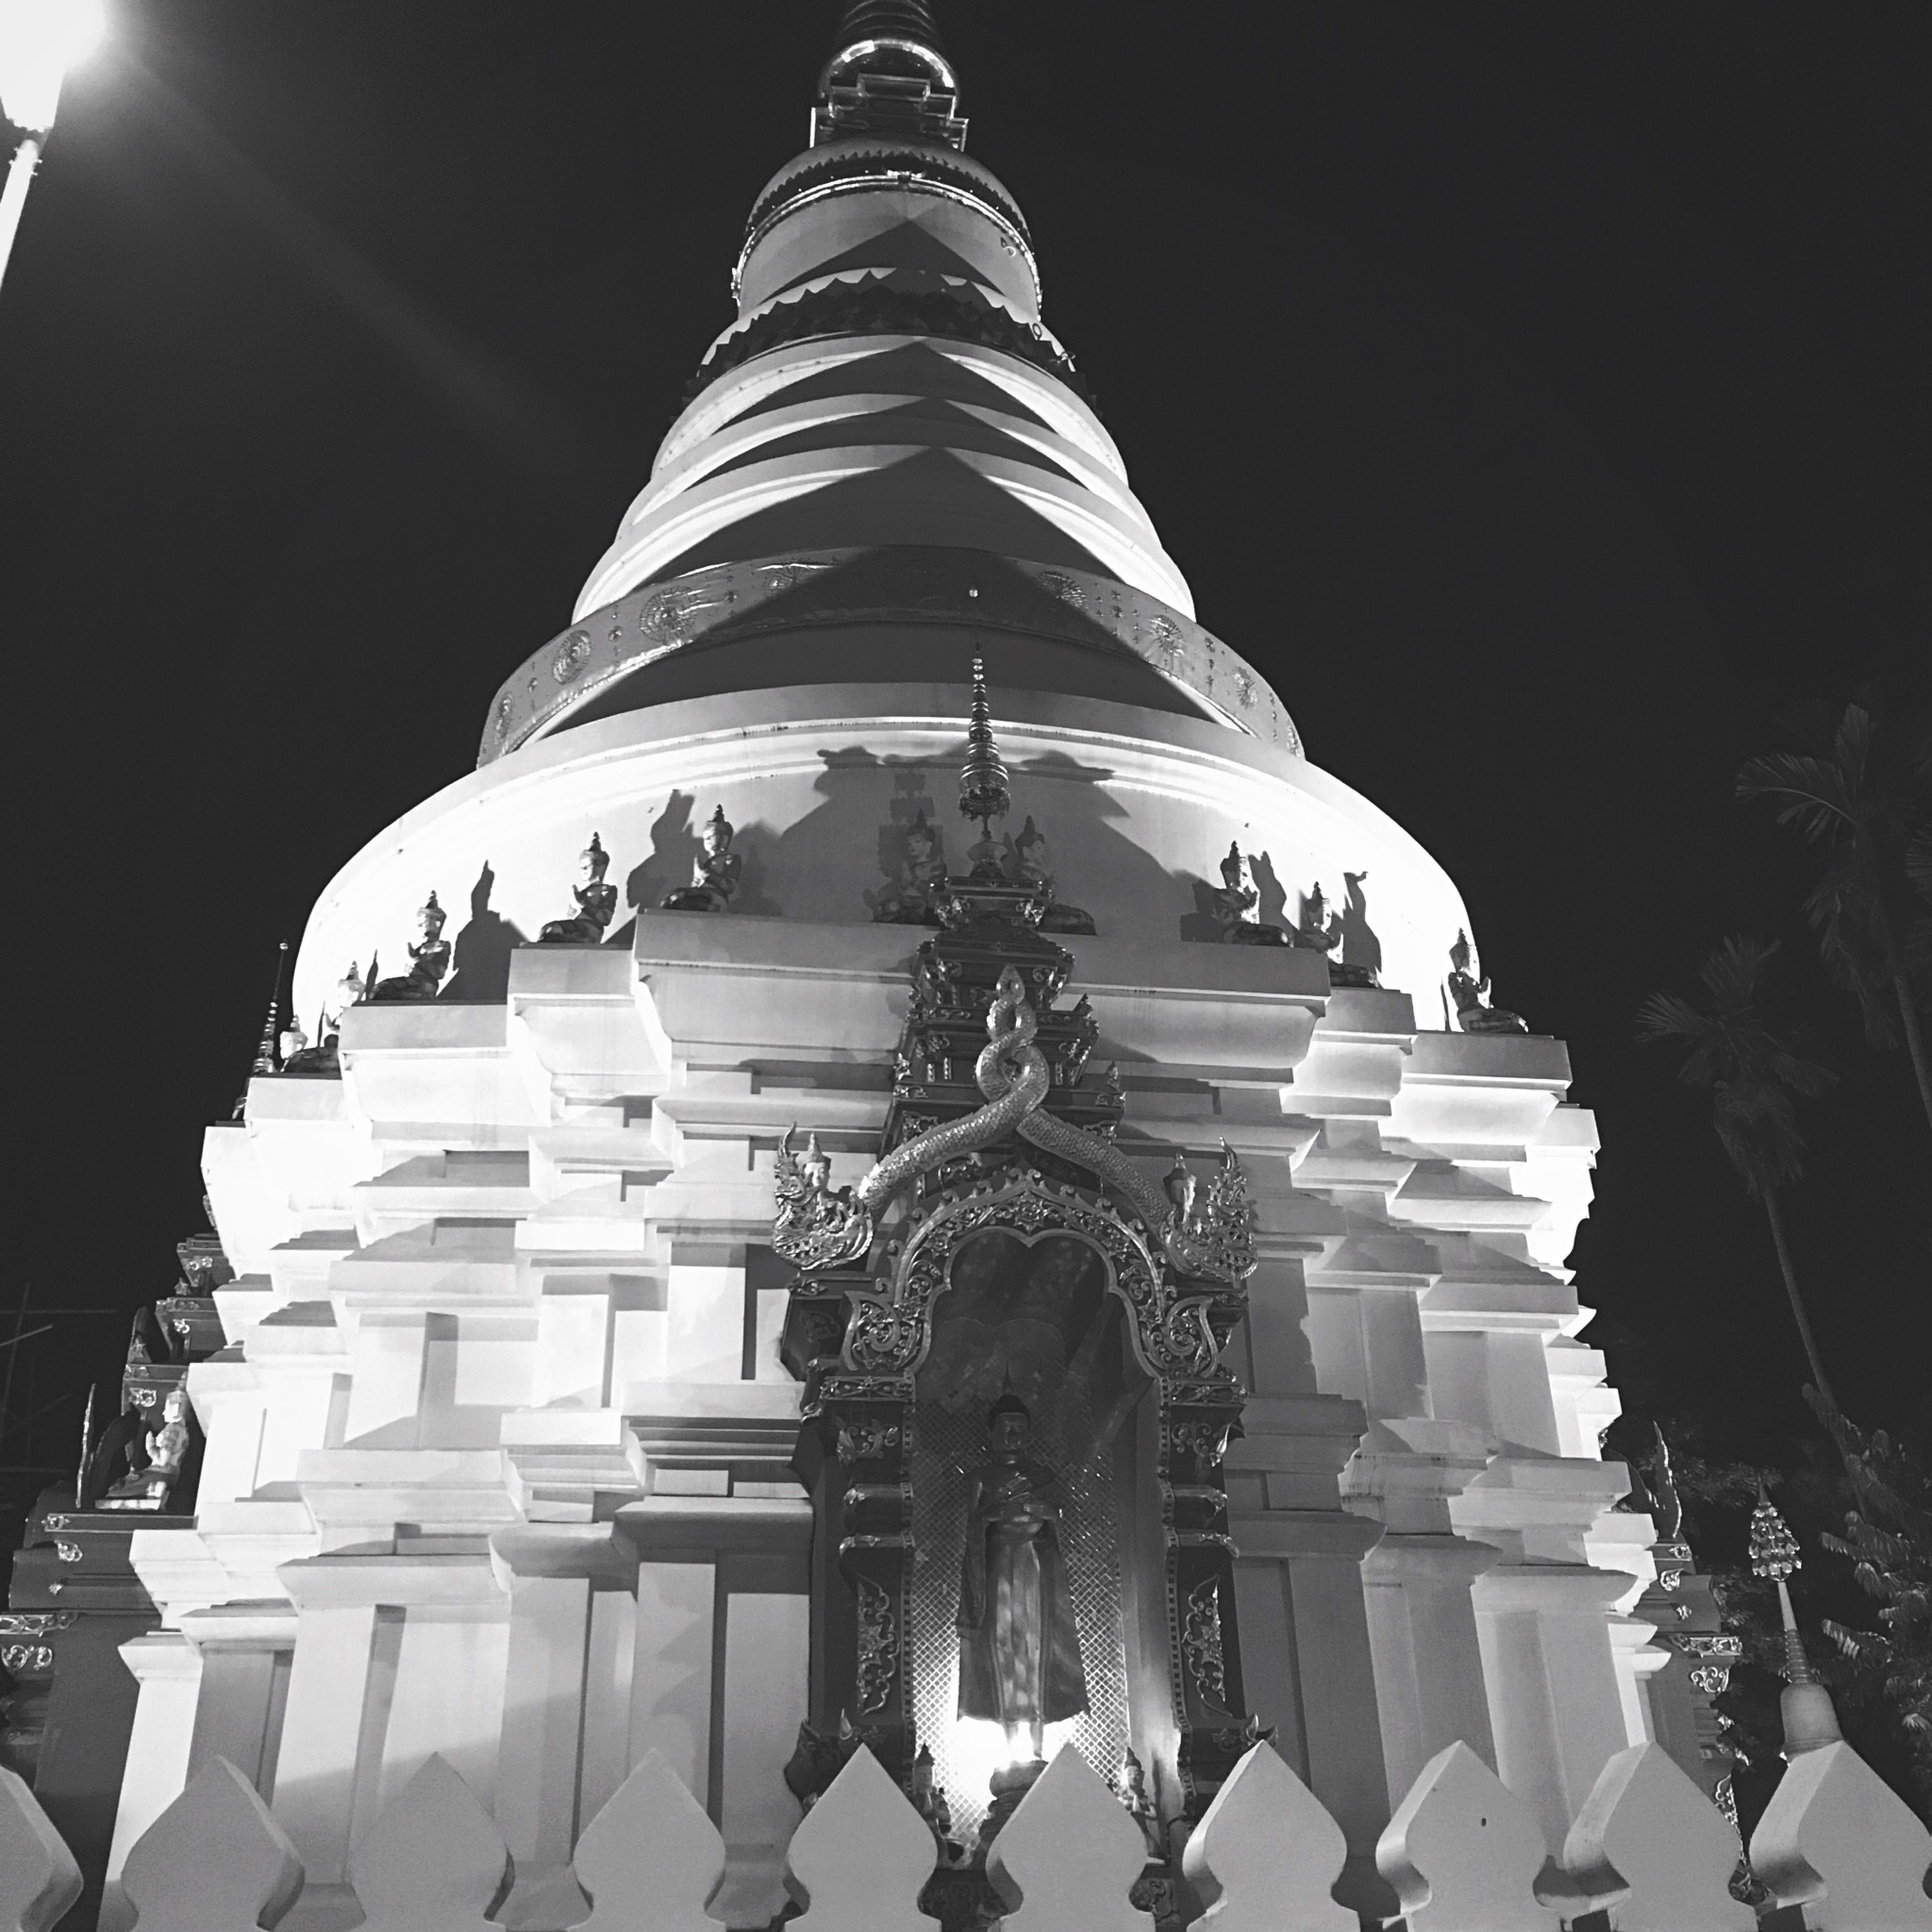 architecture, built structure, building exterior, low angle view, famous place, place of worship, religion, spirituality, travel destinations, architectural feature, illuminated, night, tourism, international landmark, pattern, clear sky, dome, city, history, travel